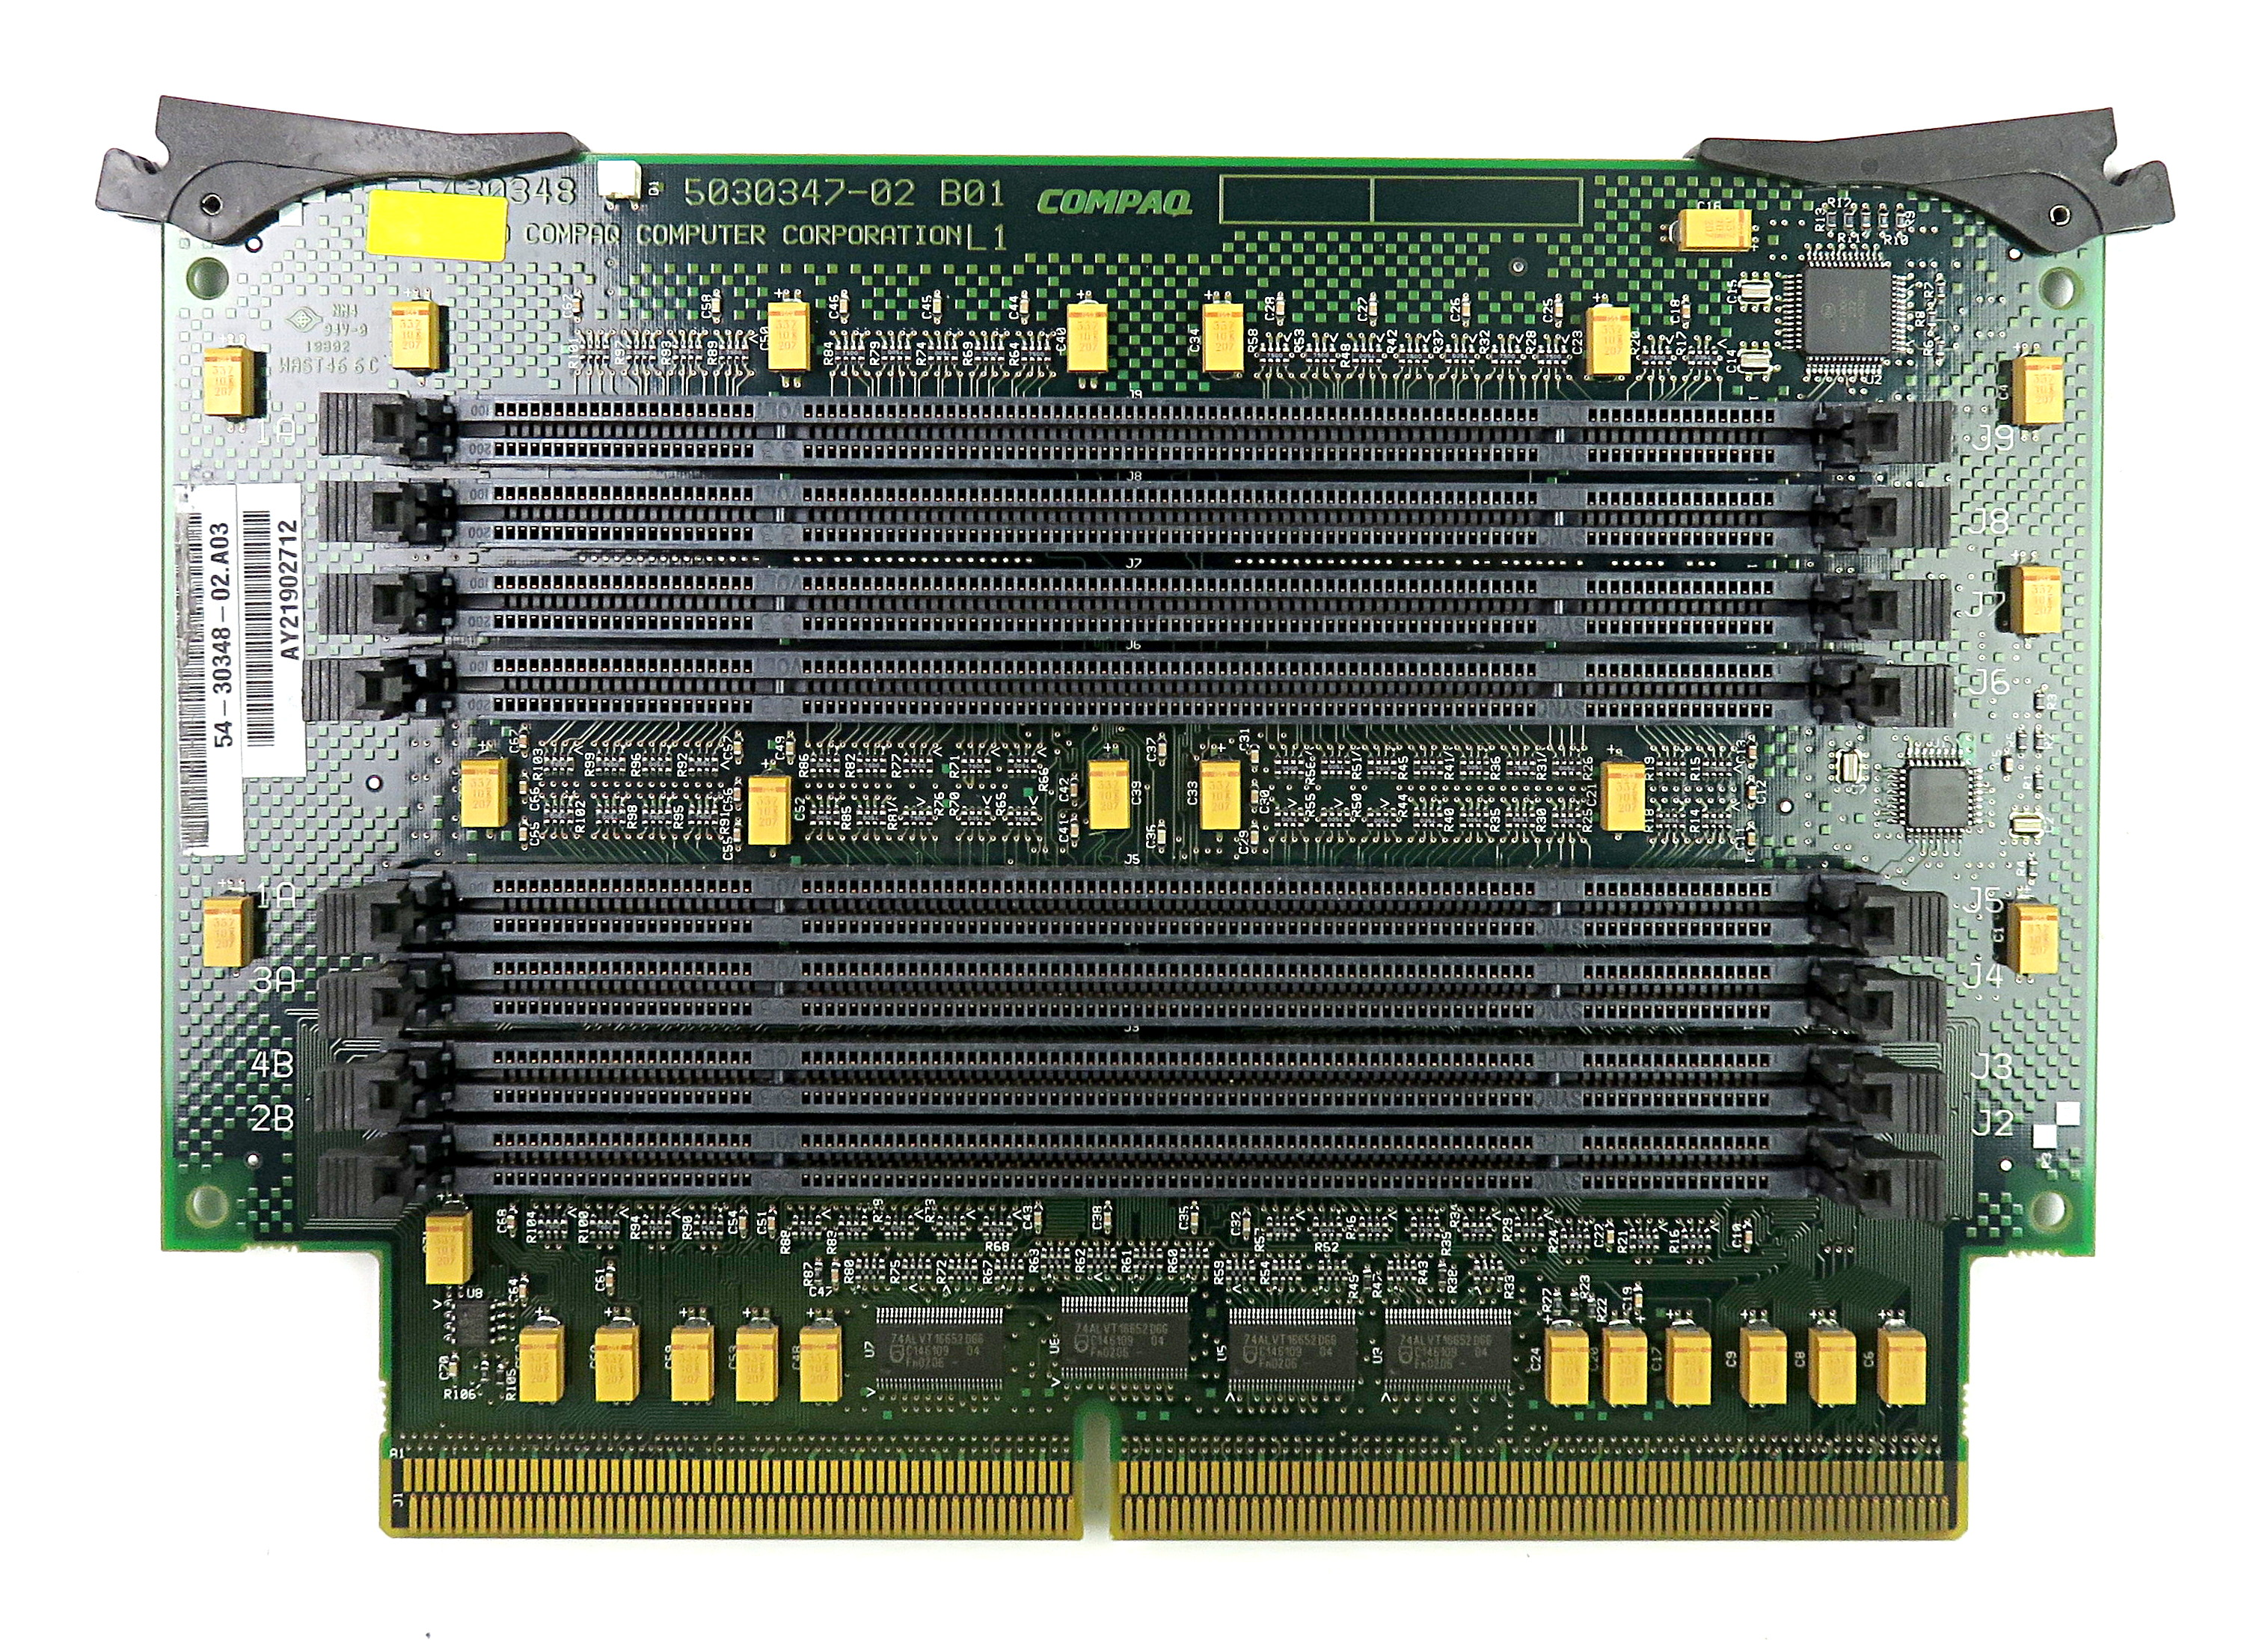 54-30348-02.A03 8-Slot Memory Card 5030347-02 f/ HP Compaq DEC Alphaserver ES45